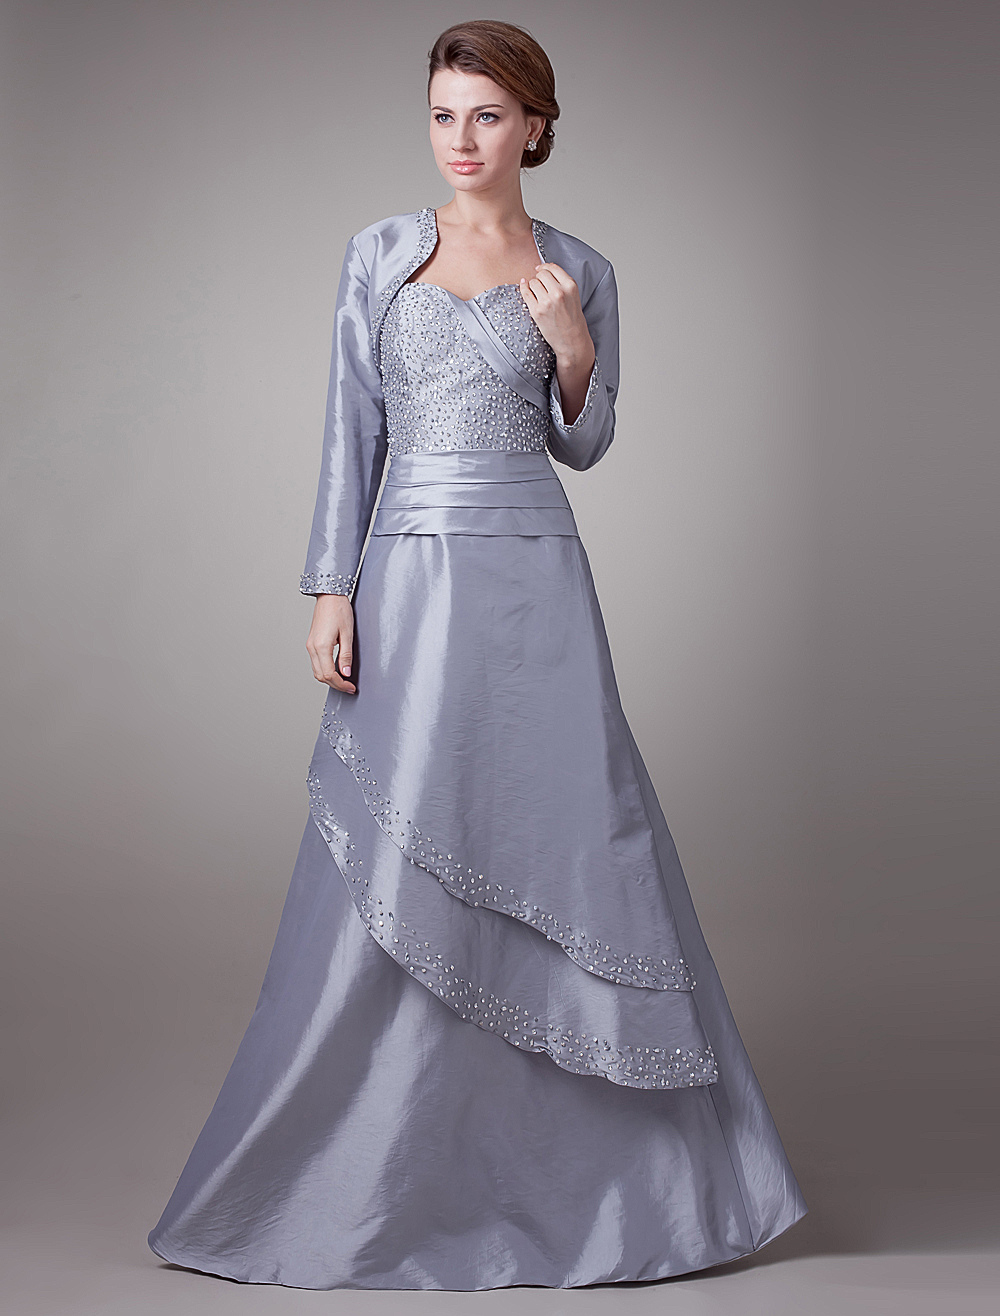 Noble Silver Taffeta Sweetheart A-Line Mother of The Bride Dress